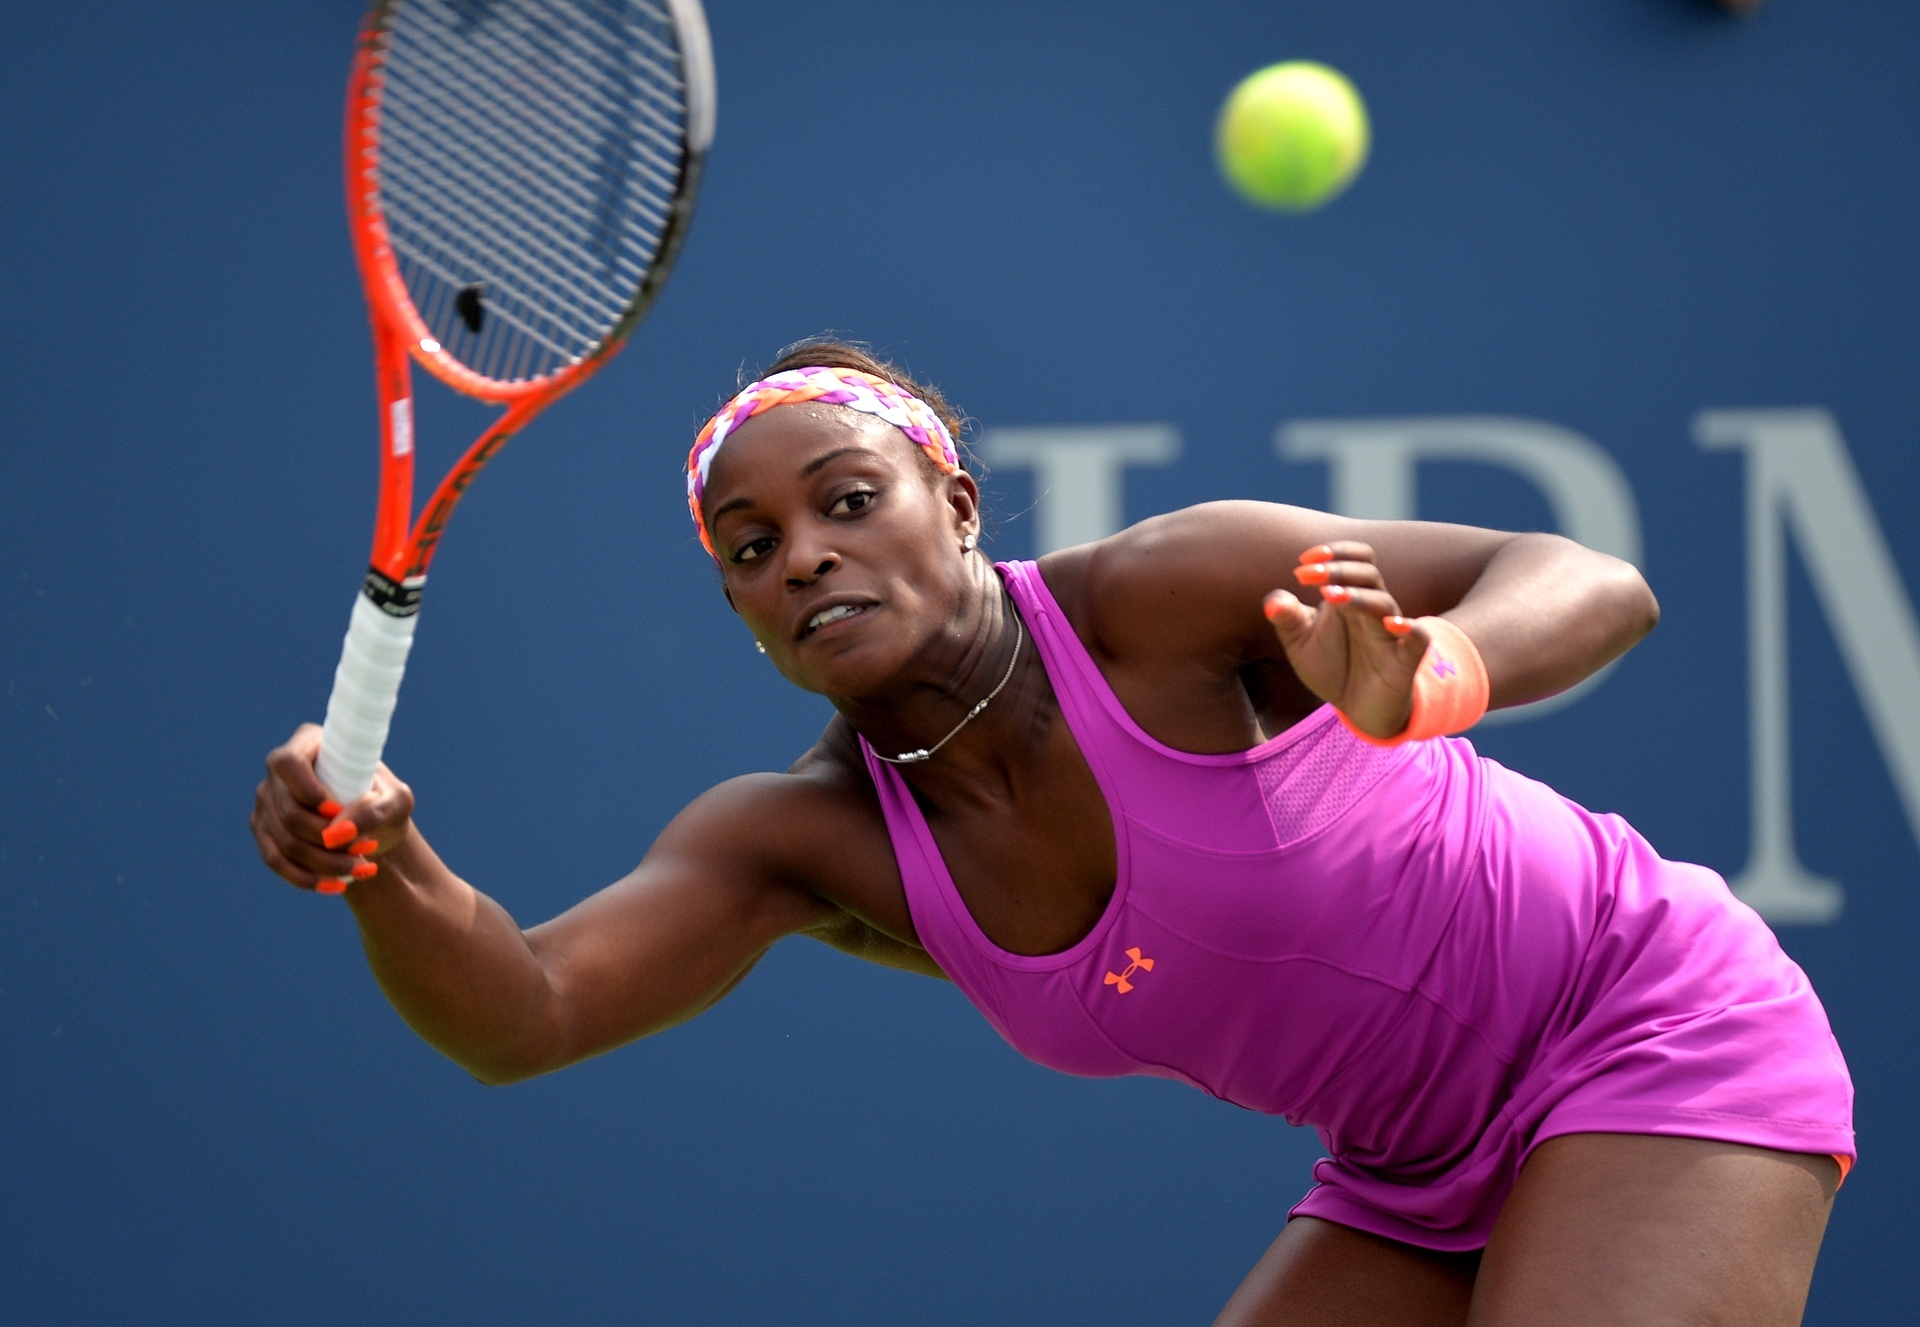 Stephens advances past first round